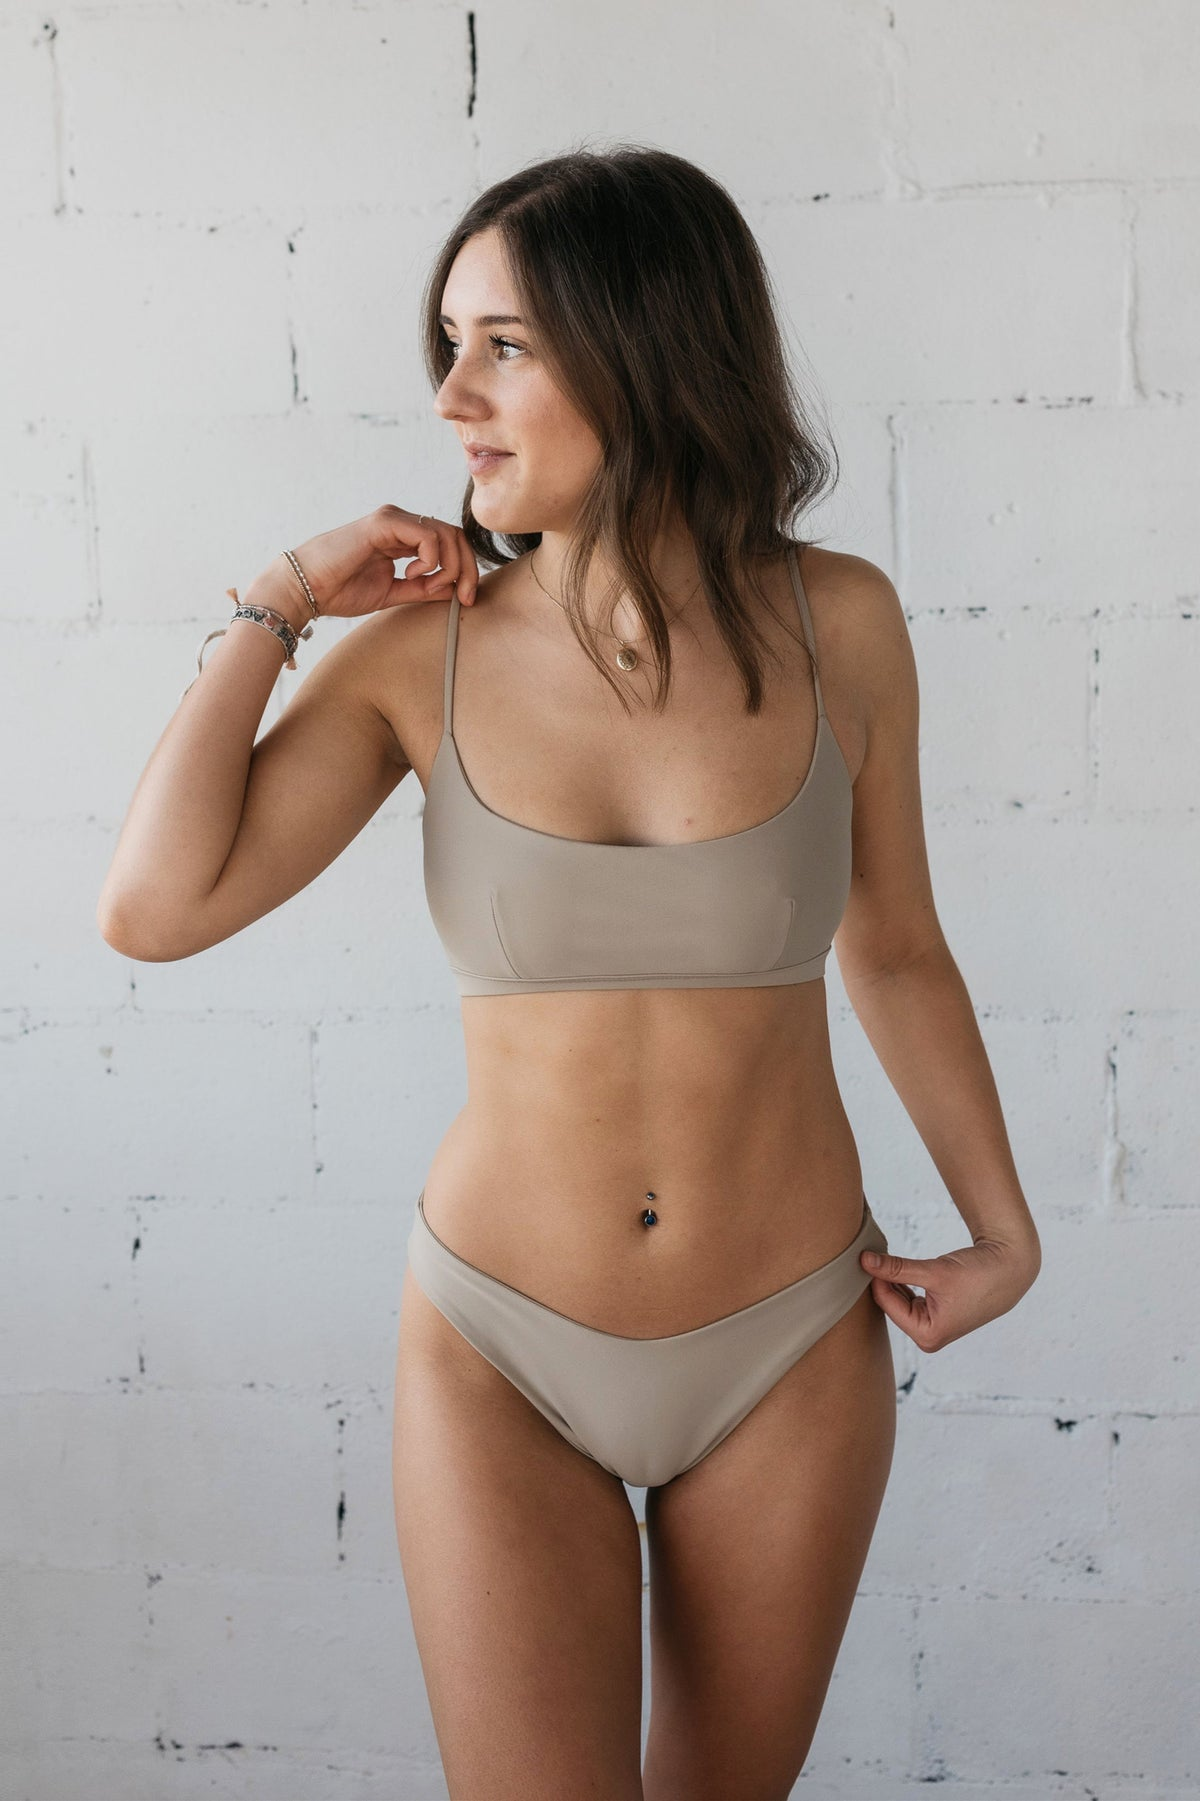 A woman standing with one hand on her shoulder looking to the side wearing nude high cut bikini bottoms and a matching nude scoop neck bikini top.